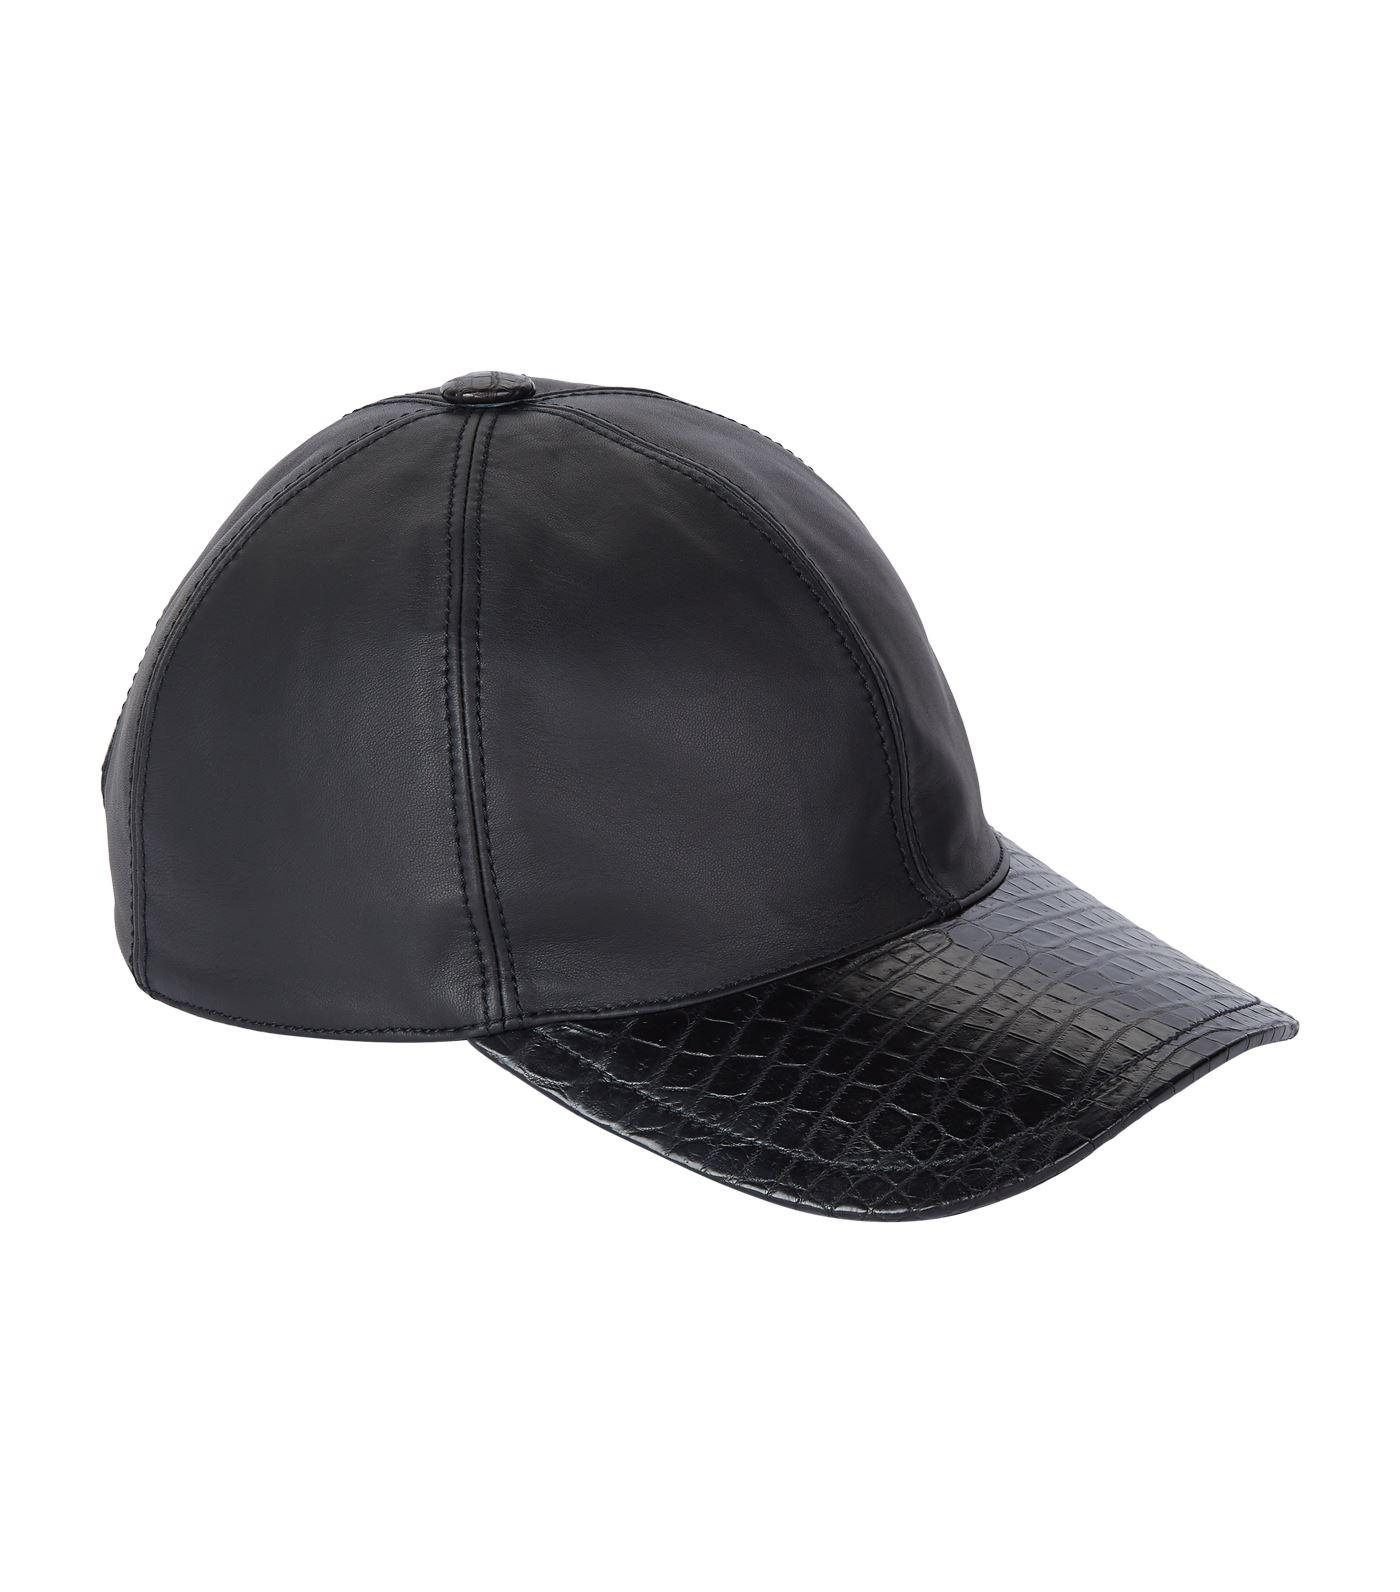 d47cd1c4f5523 Lyst - Stefano Ricci Crocodile Peak Baseball Cap in Black for Men